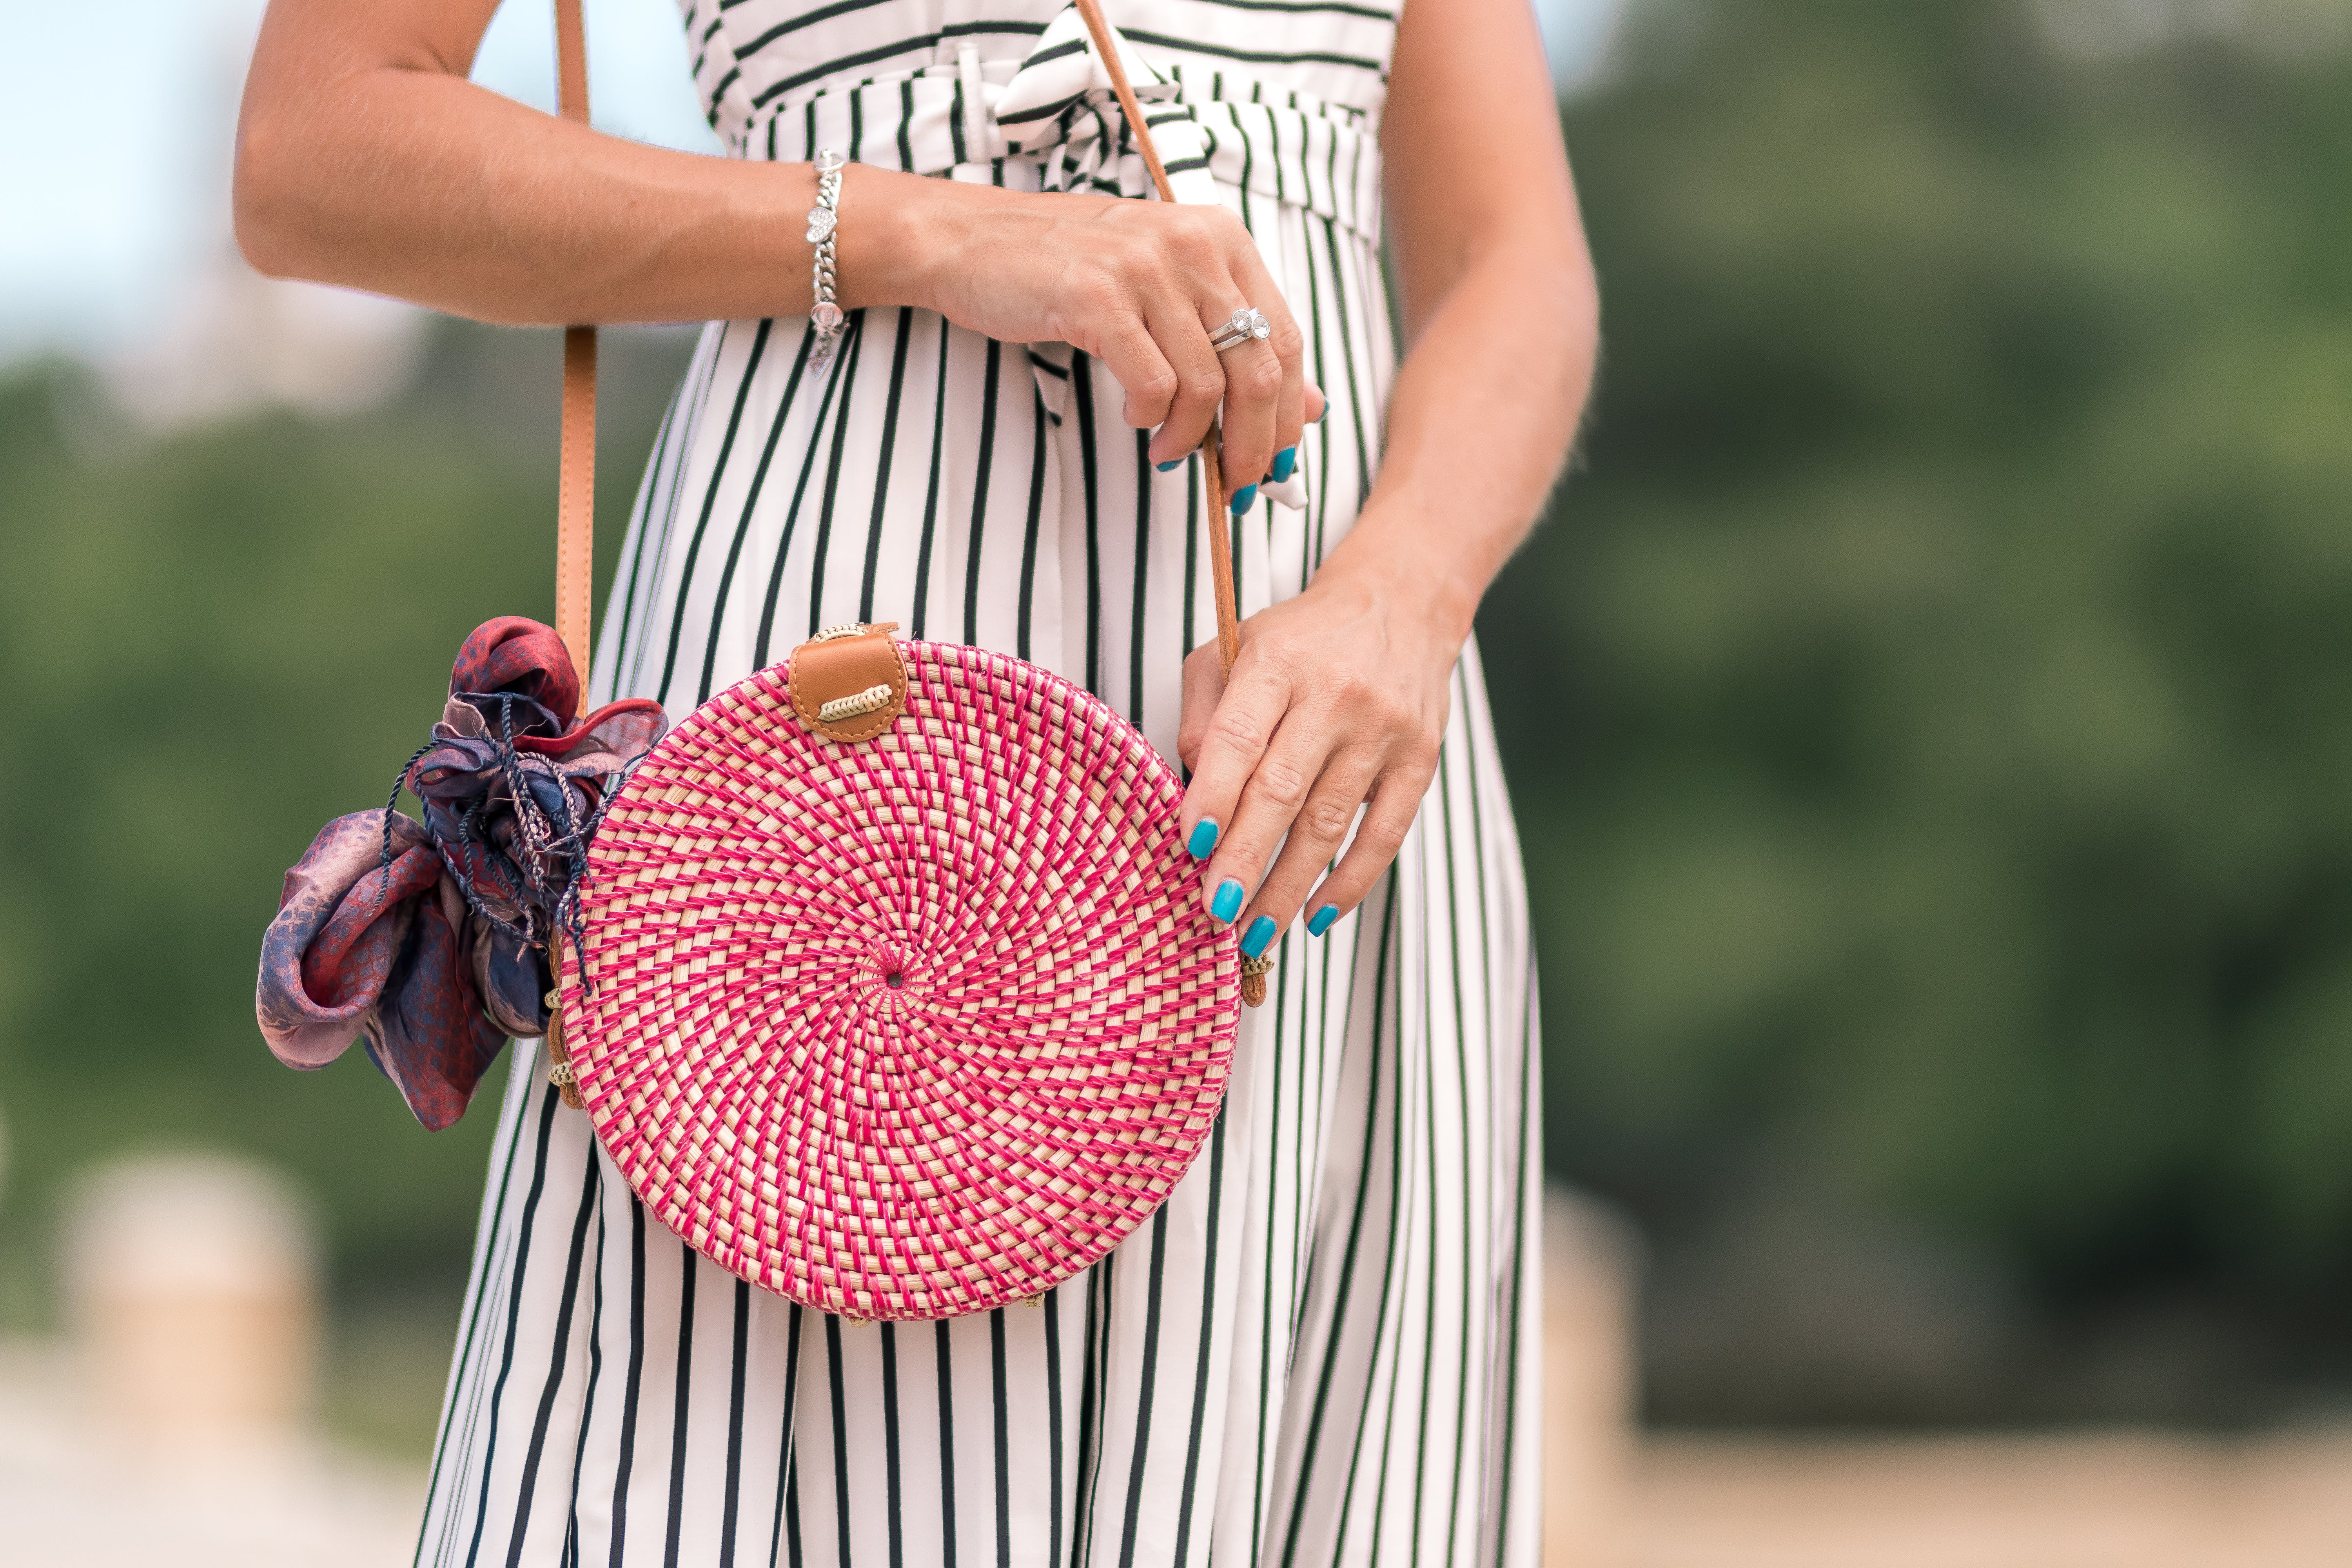 Woman Wearing White and Black Striped Dress Holding Her Red Sling Bag